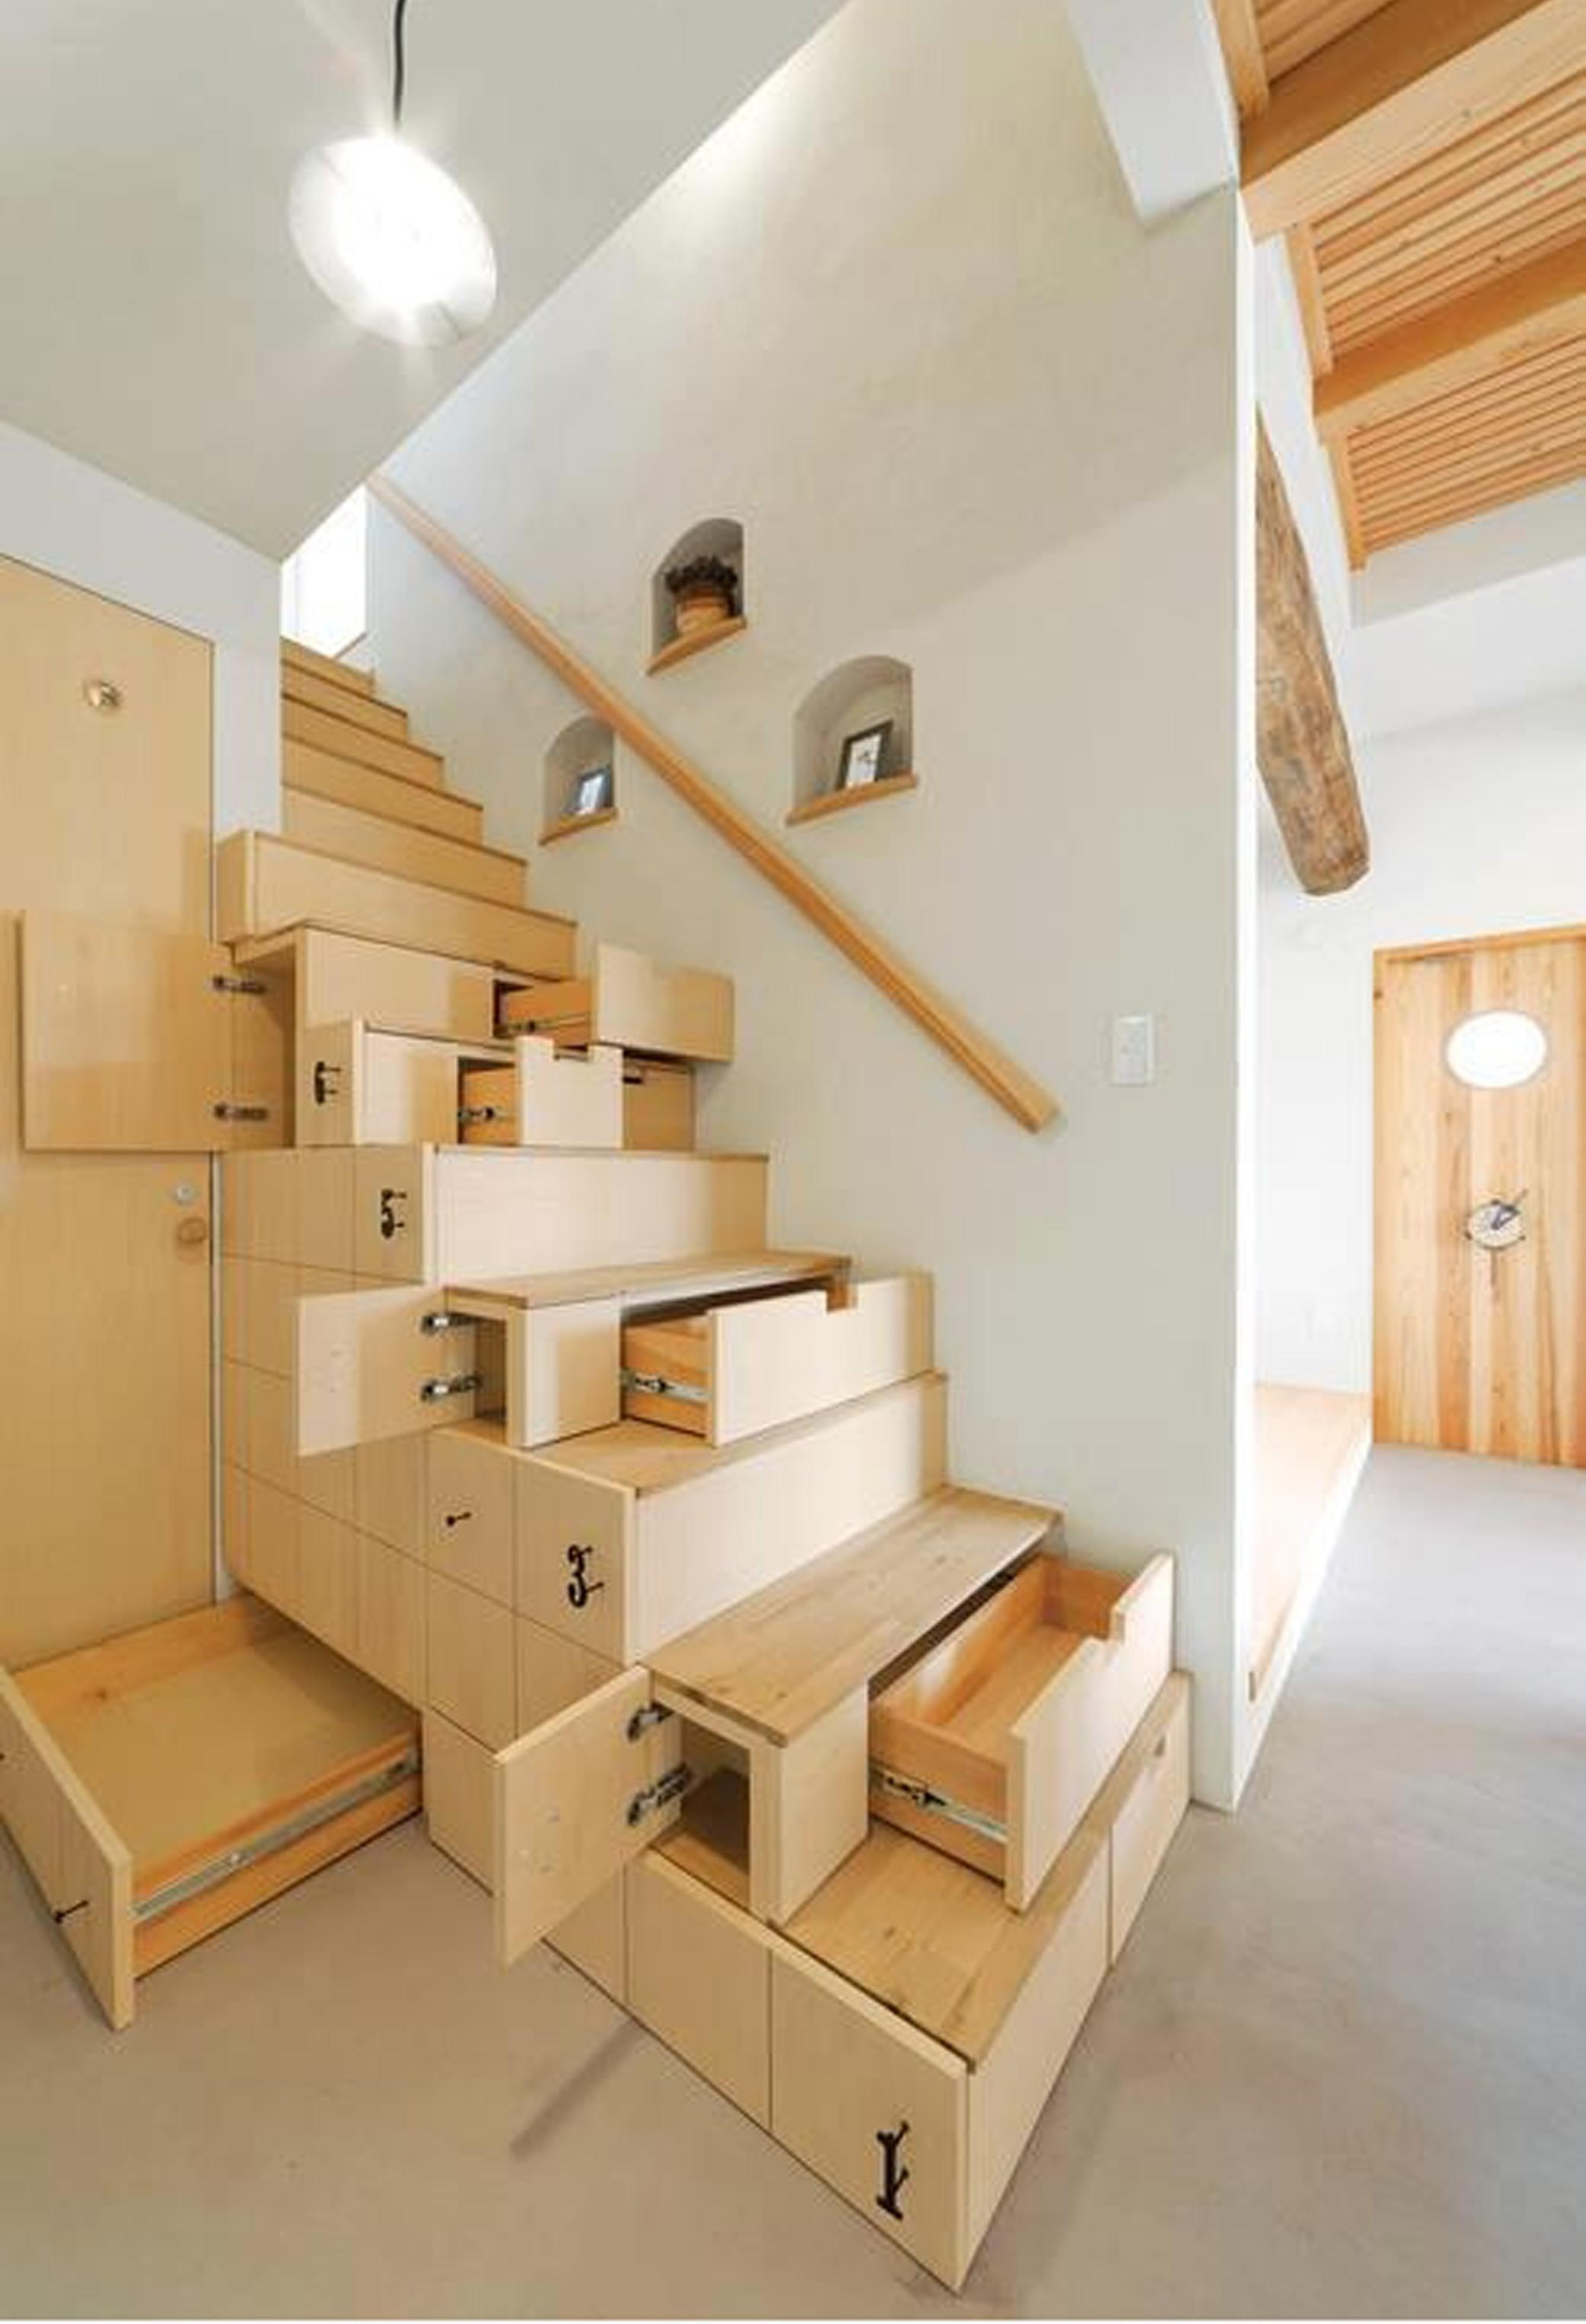 37 Contemporary Space Saving Stairs Design Idea That Are Simple | Space Saving Stairs Design | Storage | Small Space | Cute | Low Cost | 2Nd Floor Small Terrace Concrete